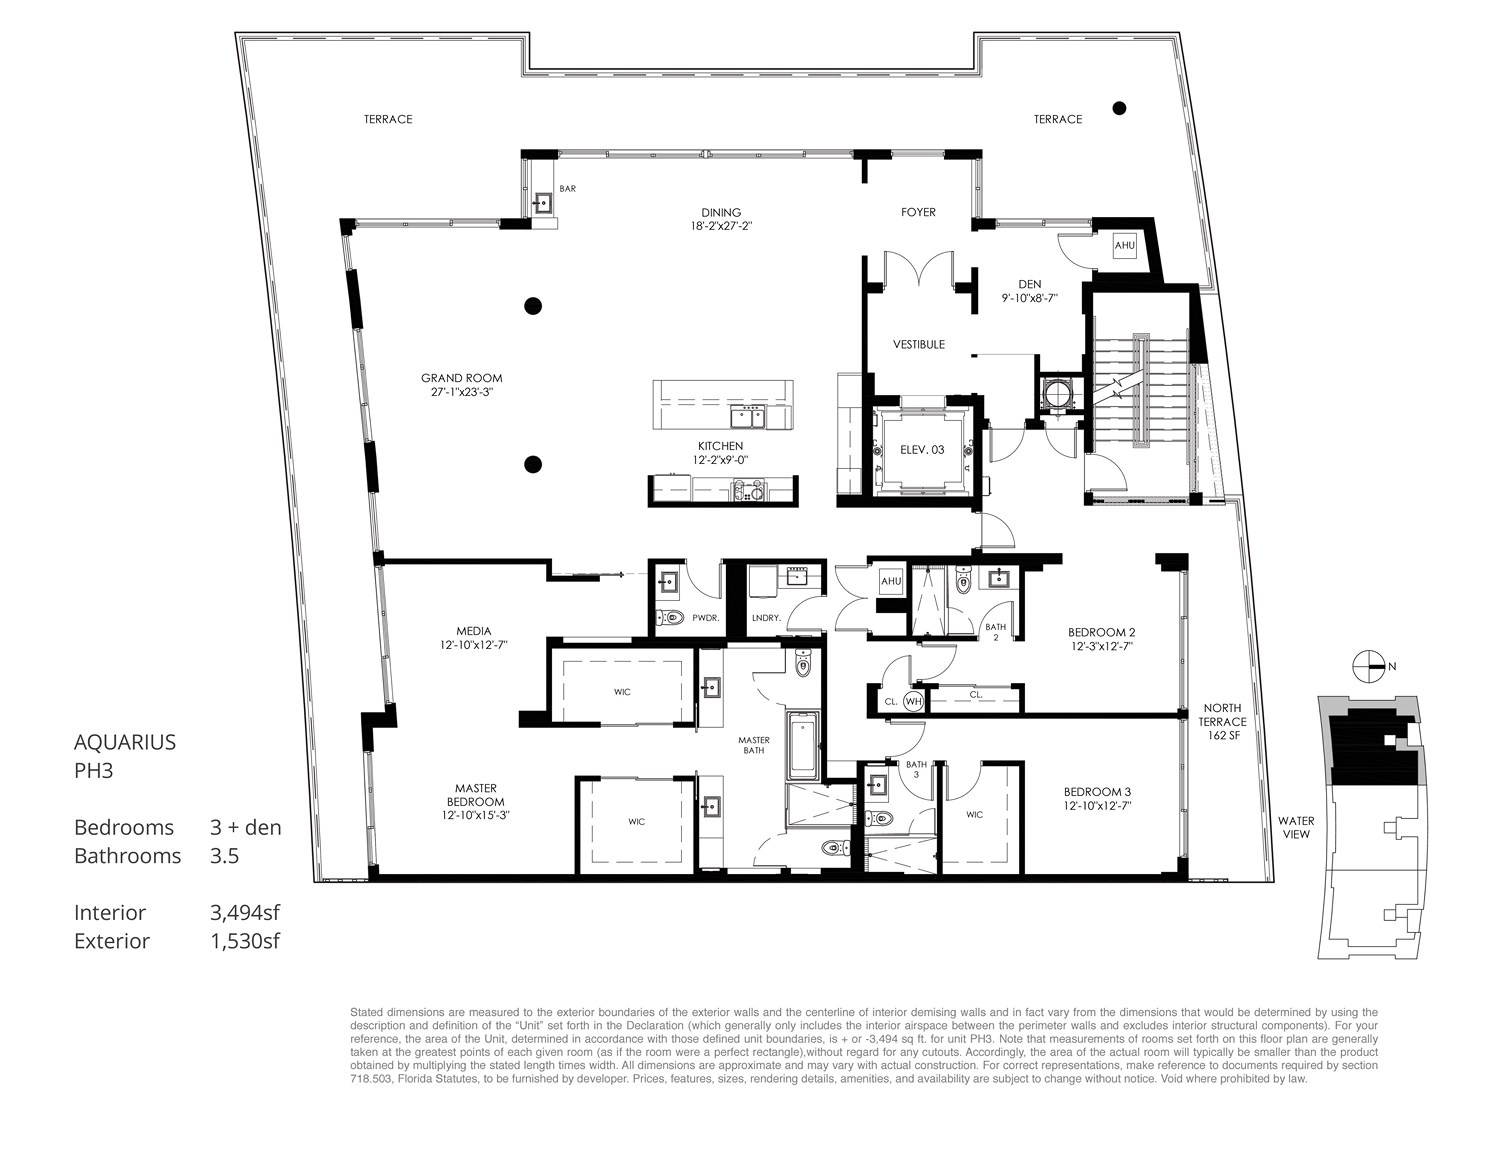 Aquarius 15 - Floorplan 9